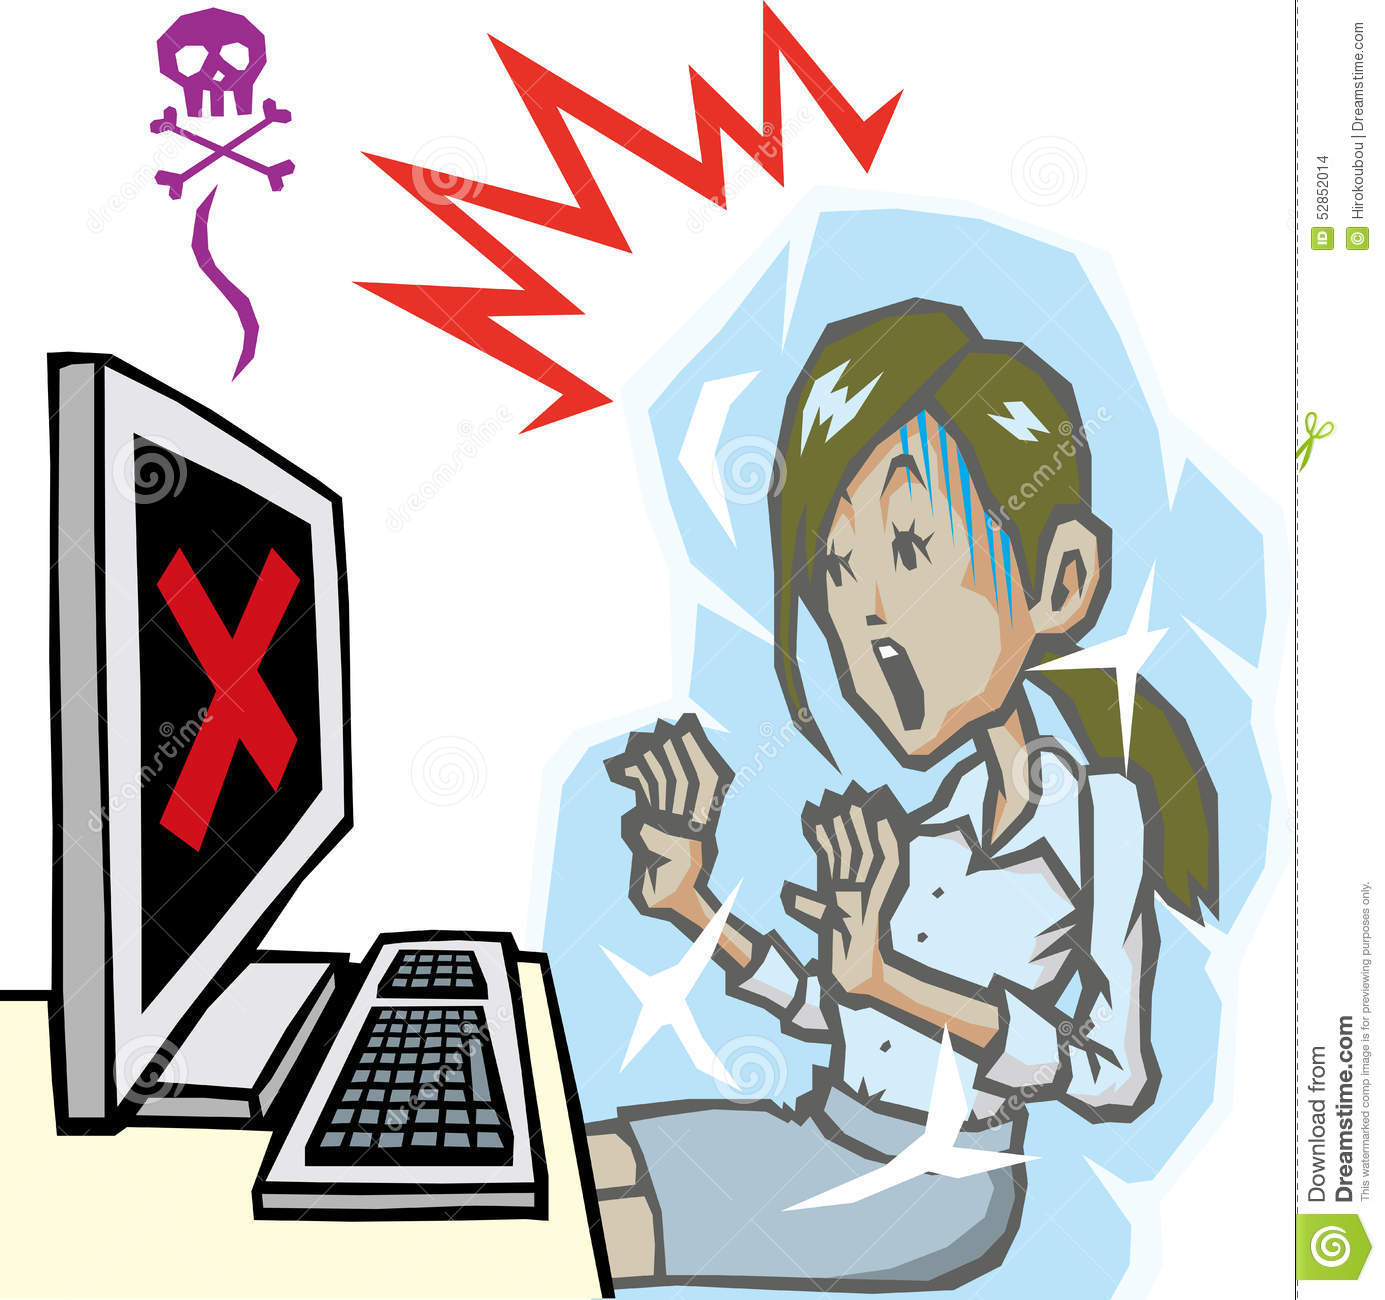 Computer Trouble: Computer Trouble Stock Illustration. Illustration Of